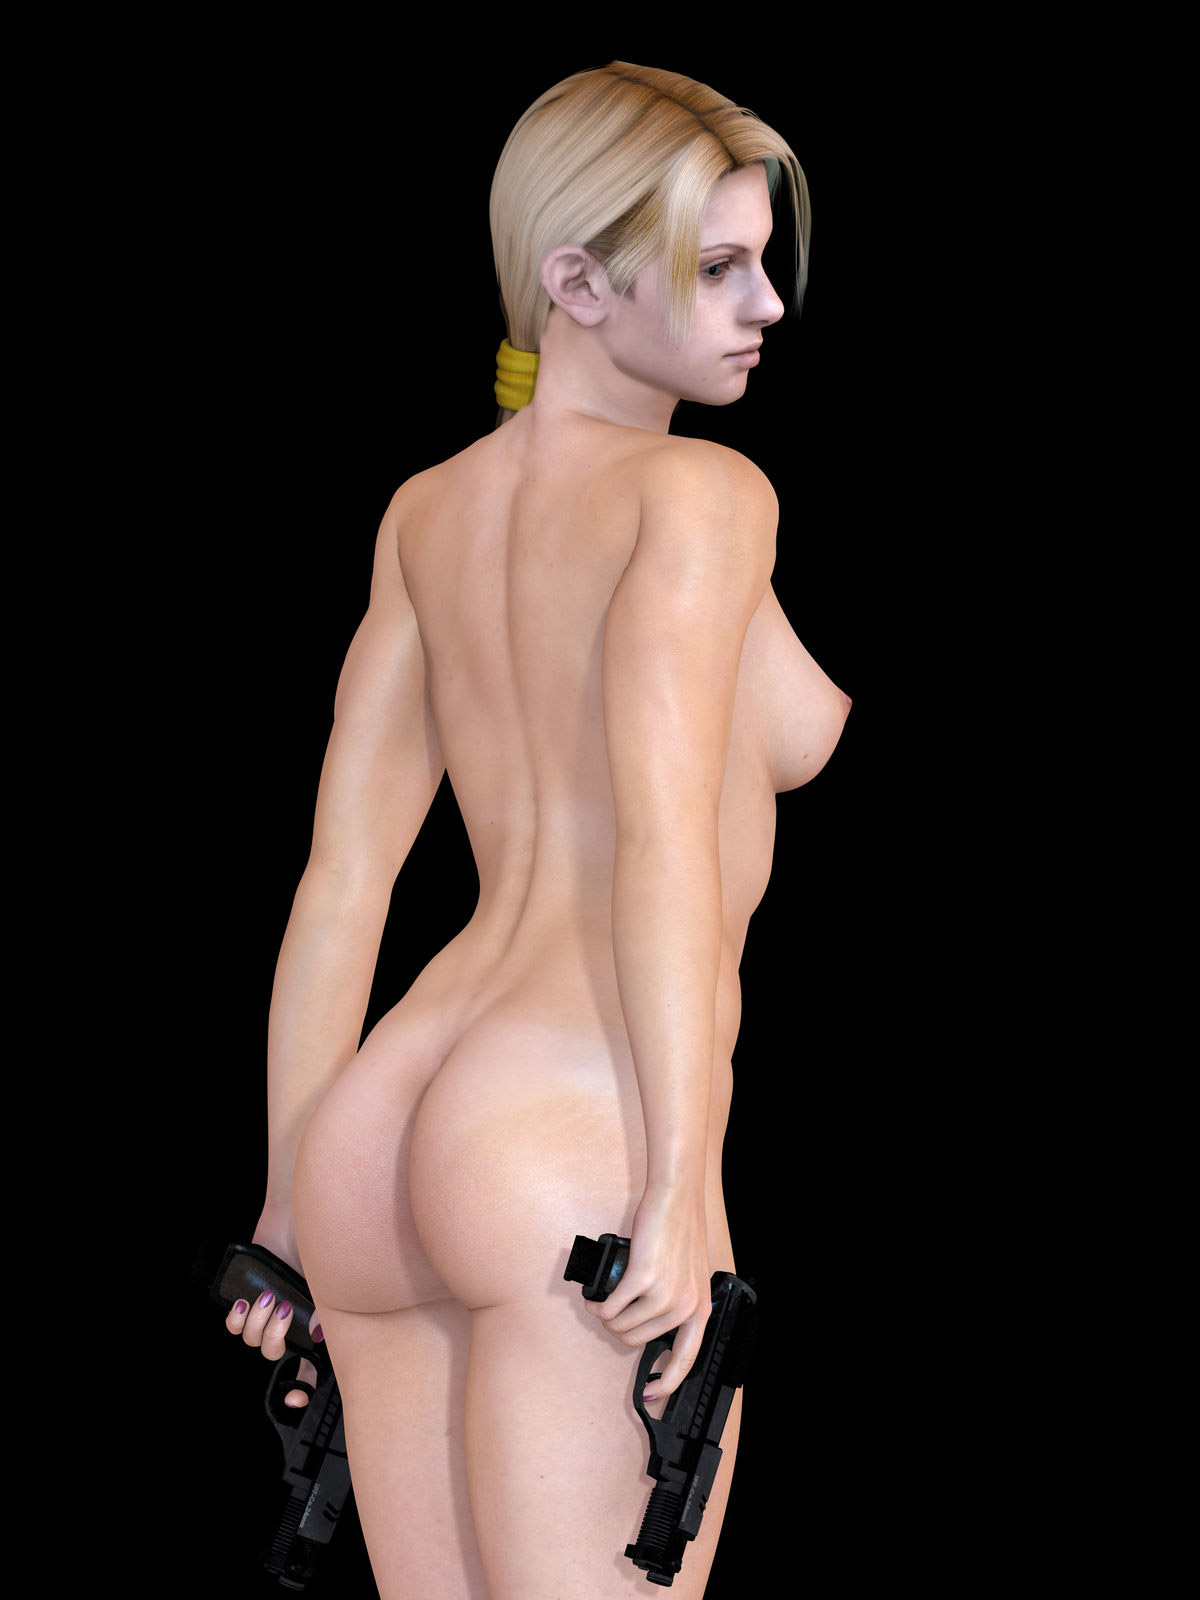 "Nude mod р±р»рµр№рґрµсѓ рѕс"" с'nakedрјрµ naked pink stripper"